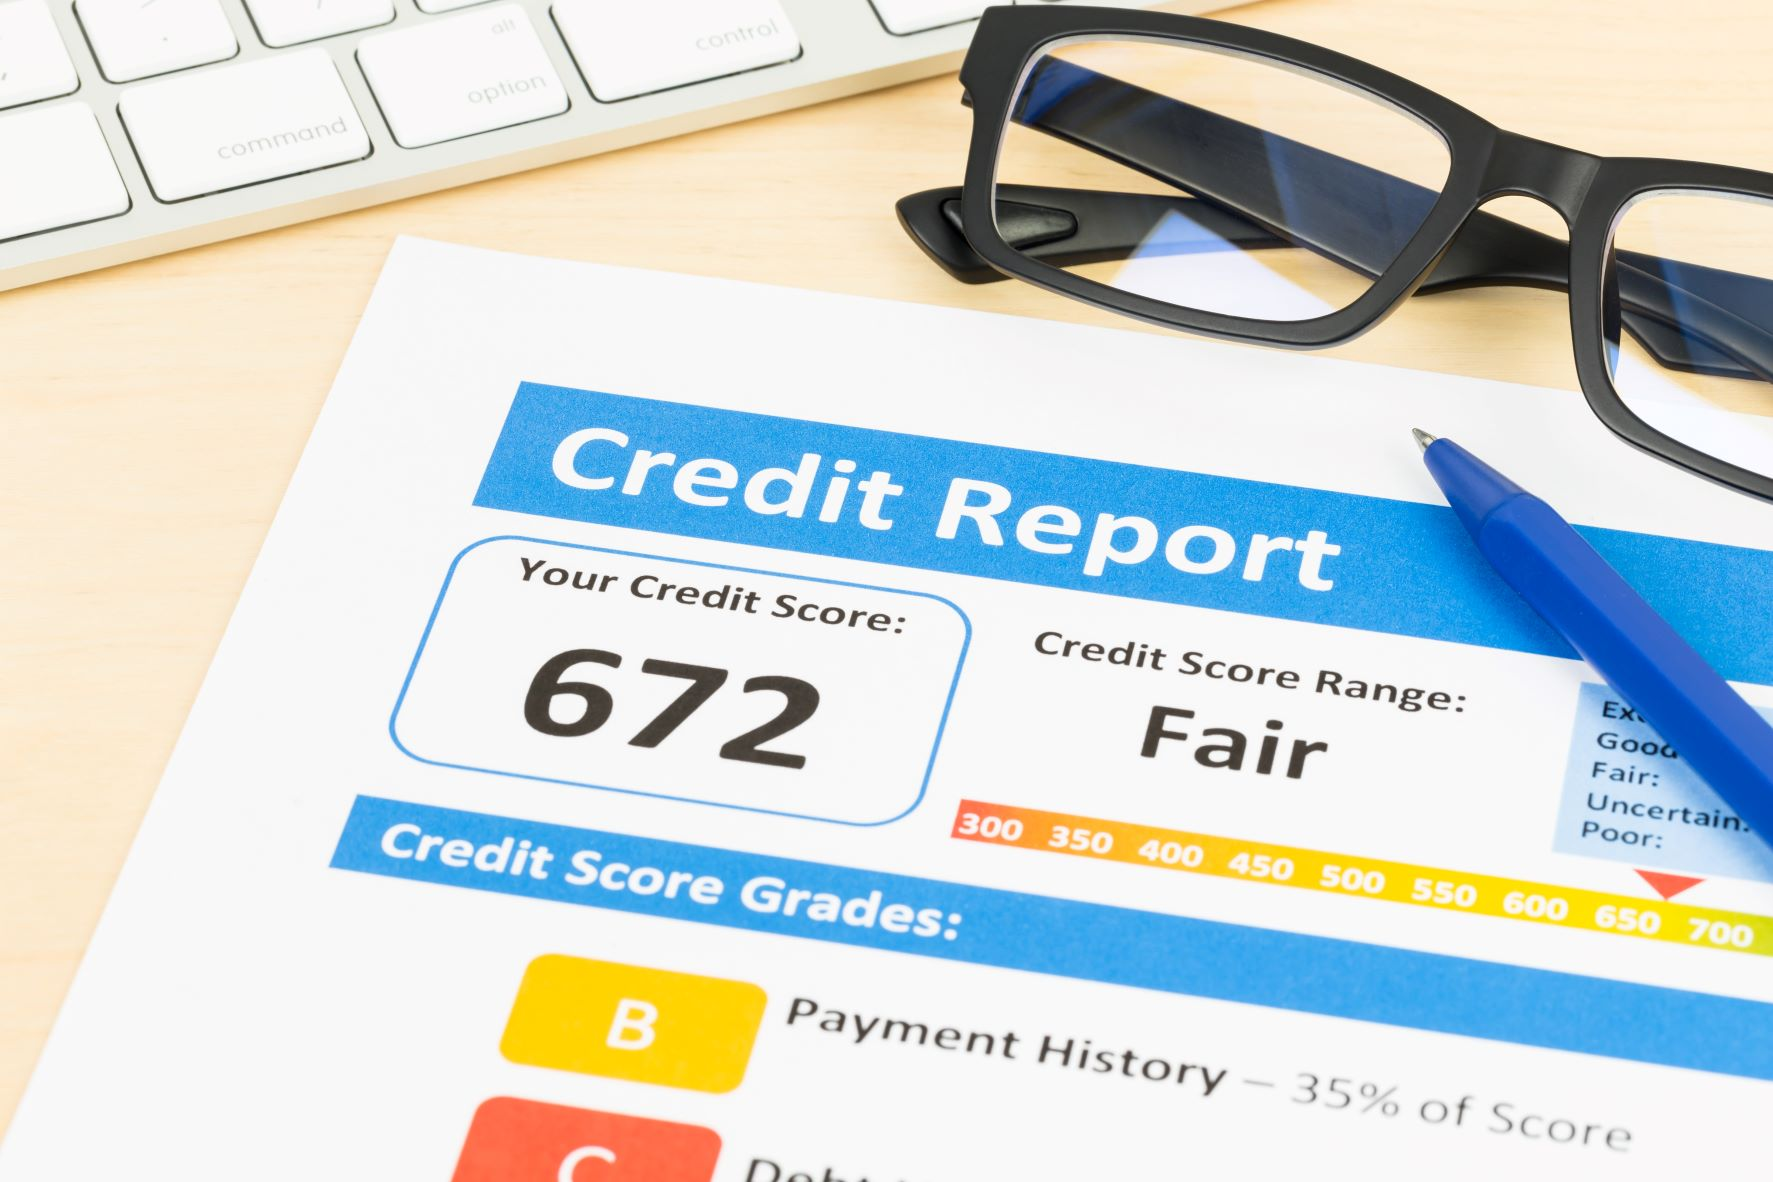 credit report on a table